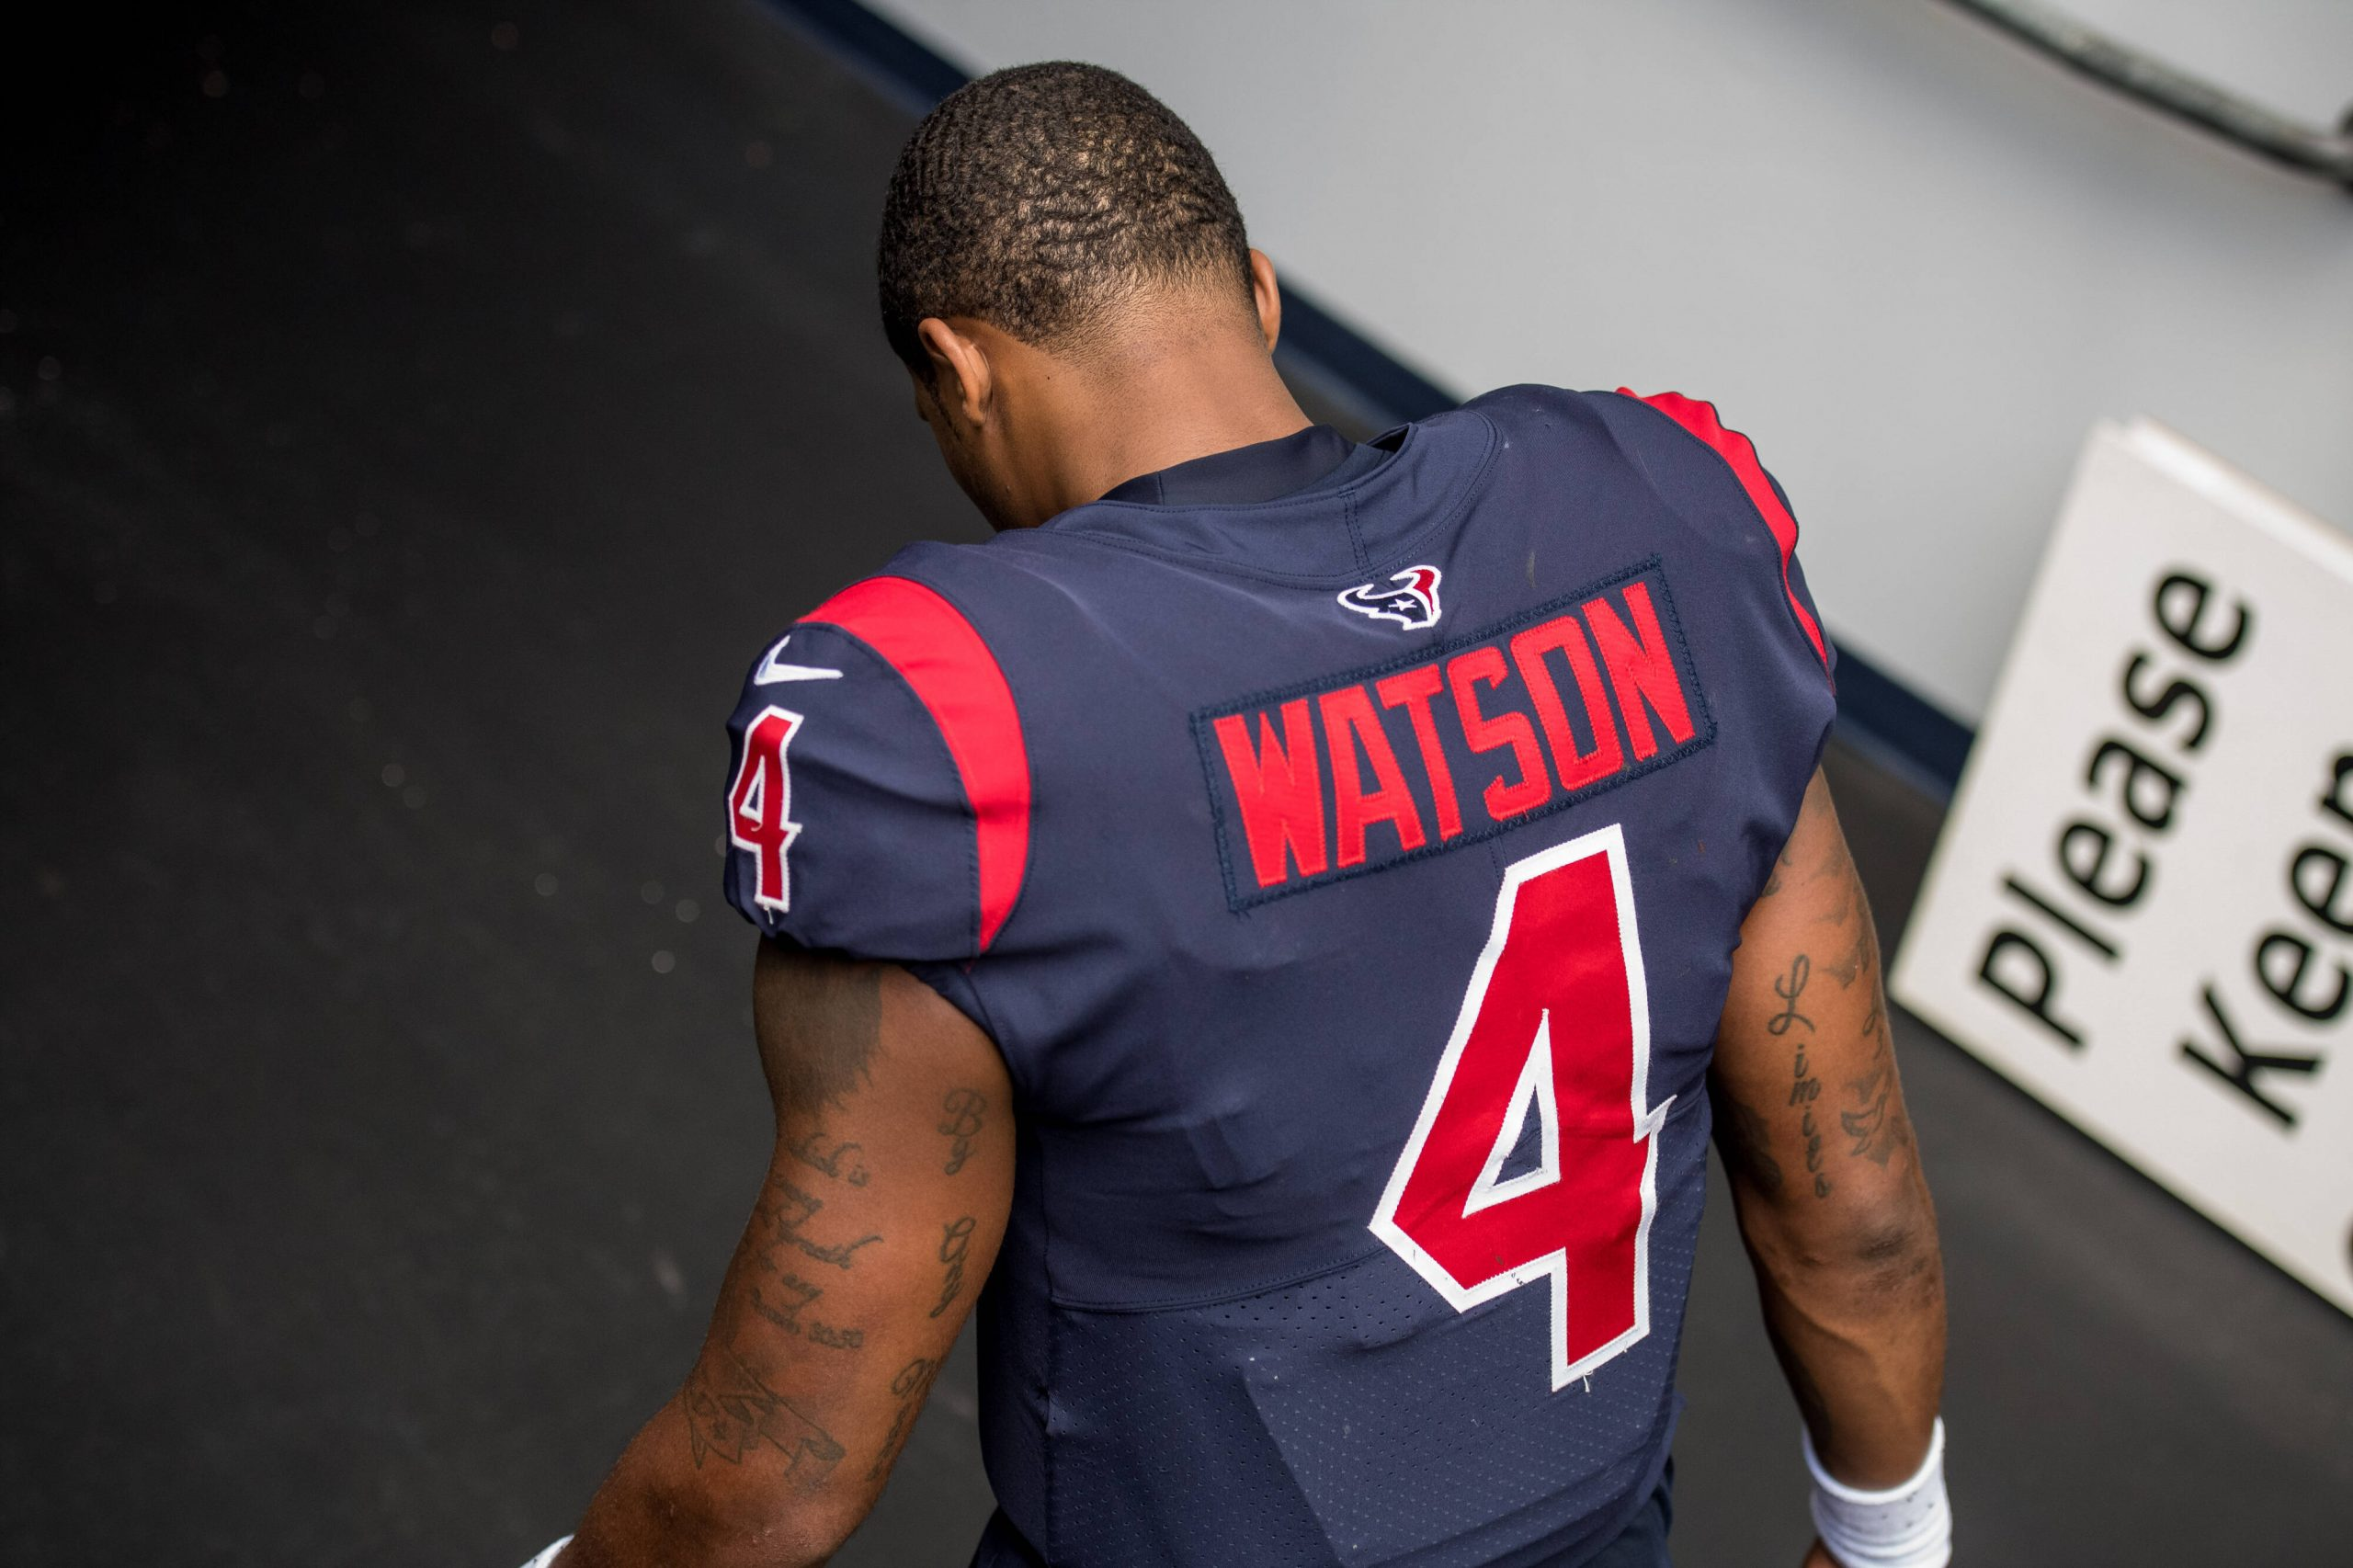 Watson Trade: Houston Texans quarterback Deshaun Watson (4) enters the tunnel after an NFL, American Football Herr